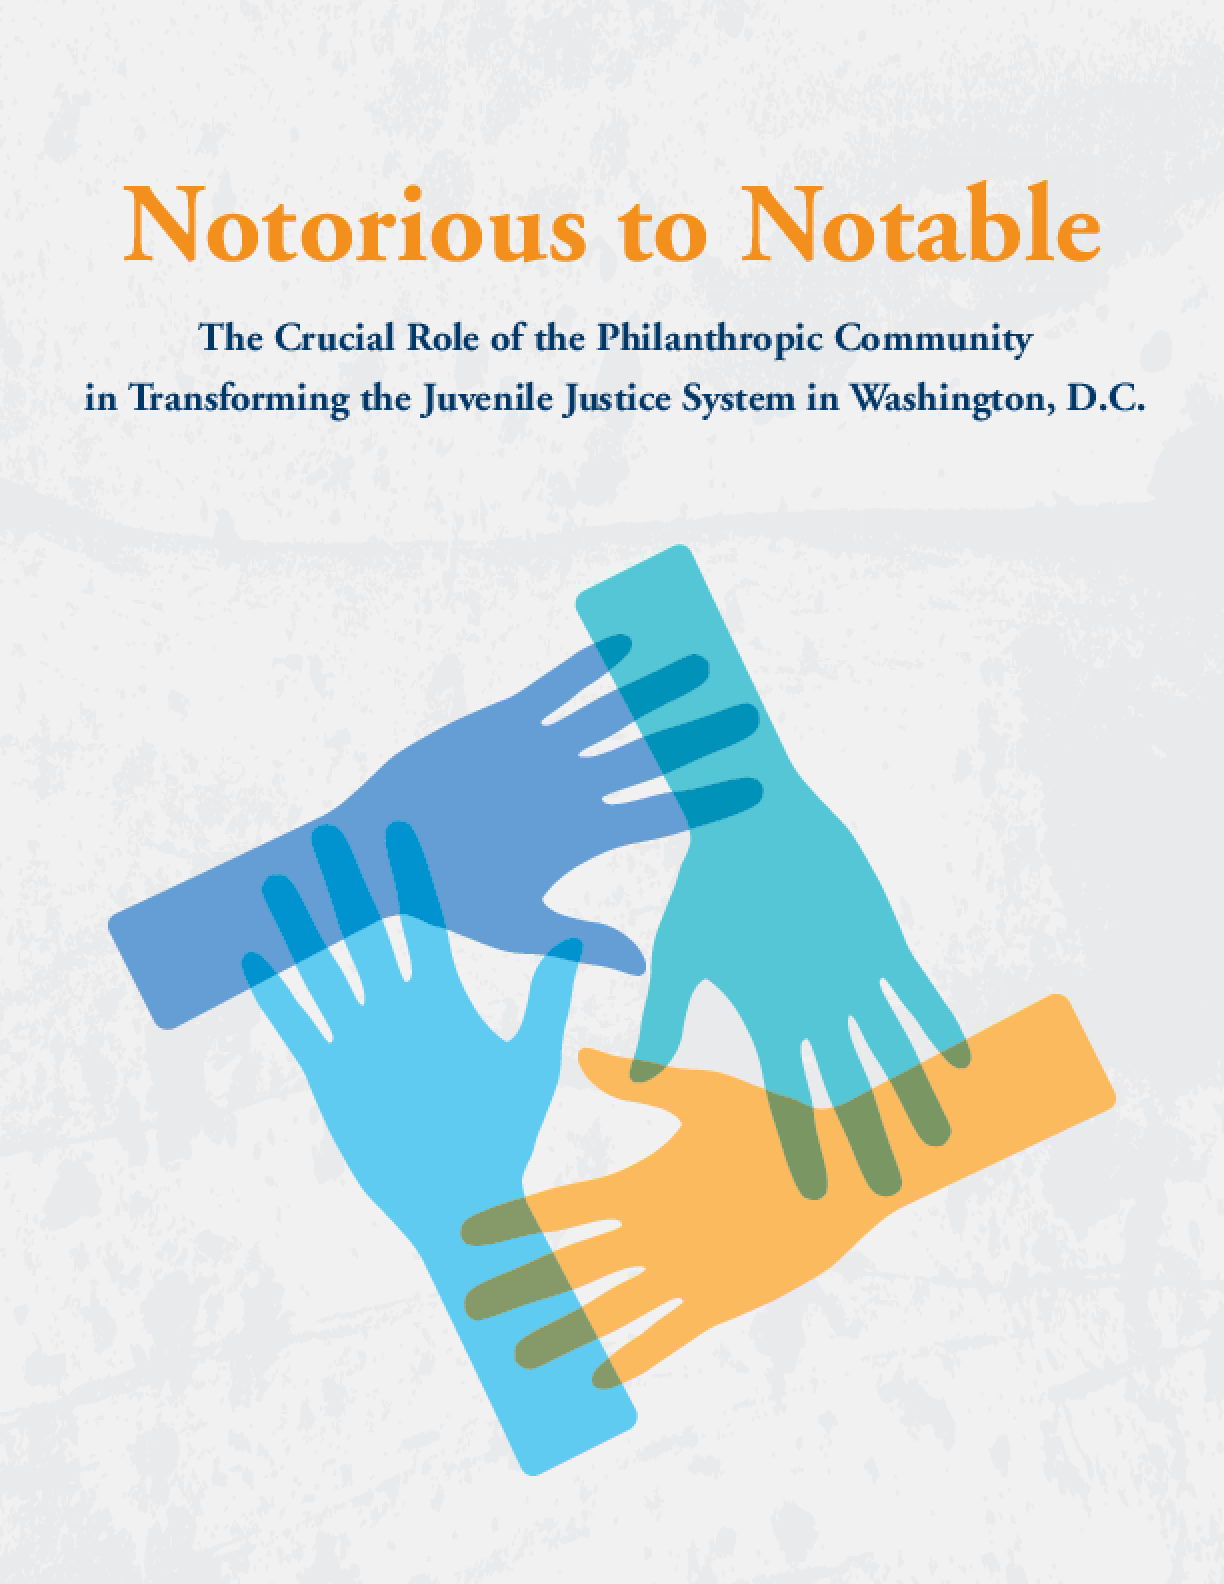 Notorious to Notable: The Crucial Role of the Philanthropic Community in Transforming the Juvenile Justice System in Washington, D.C.